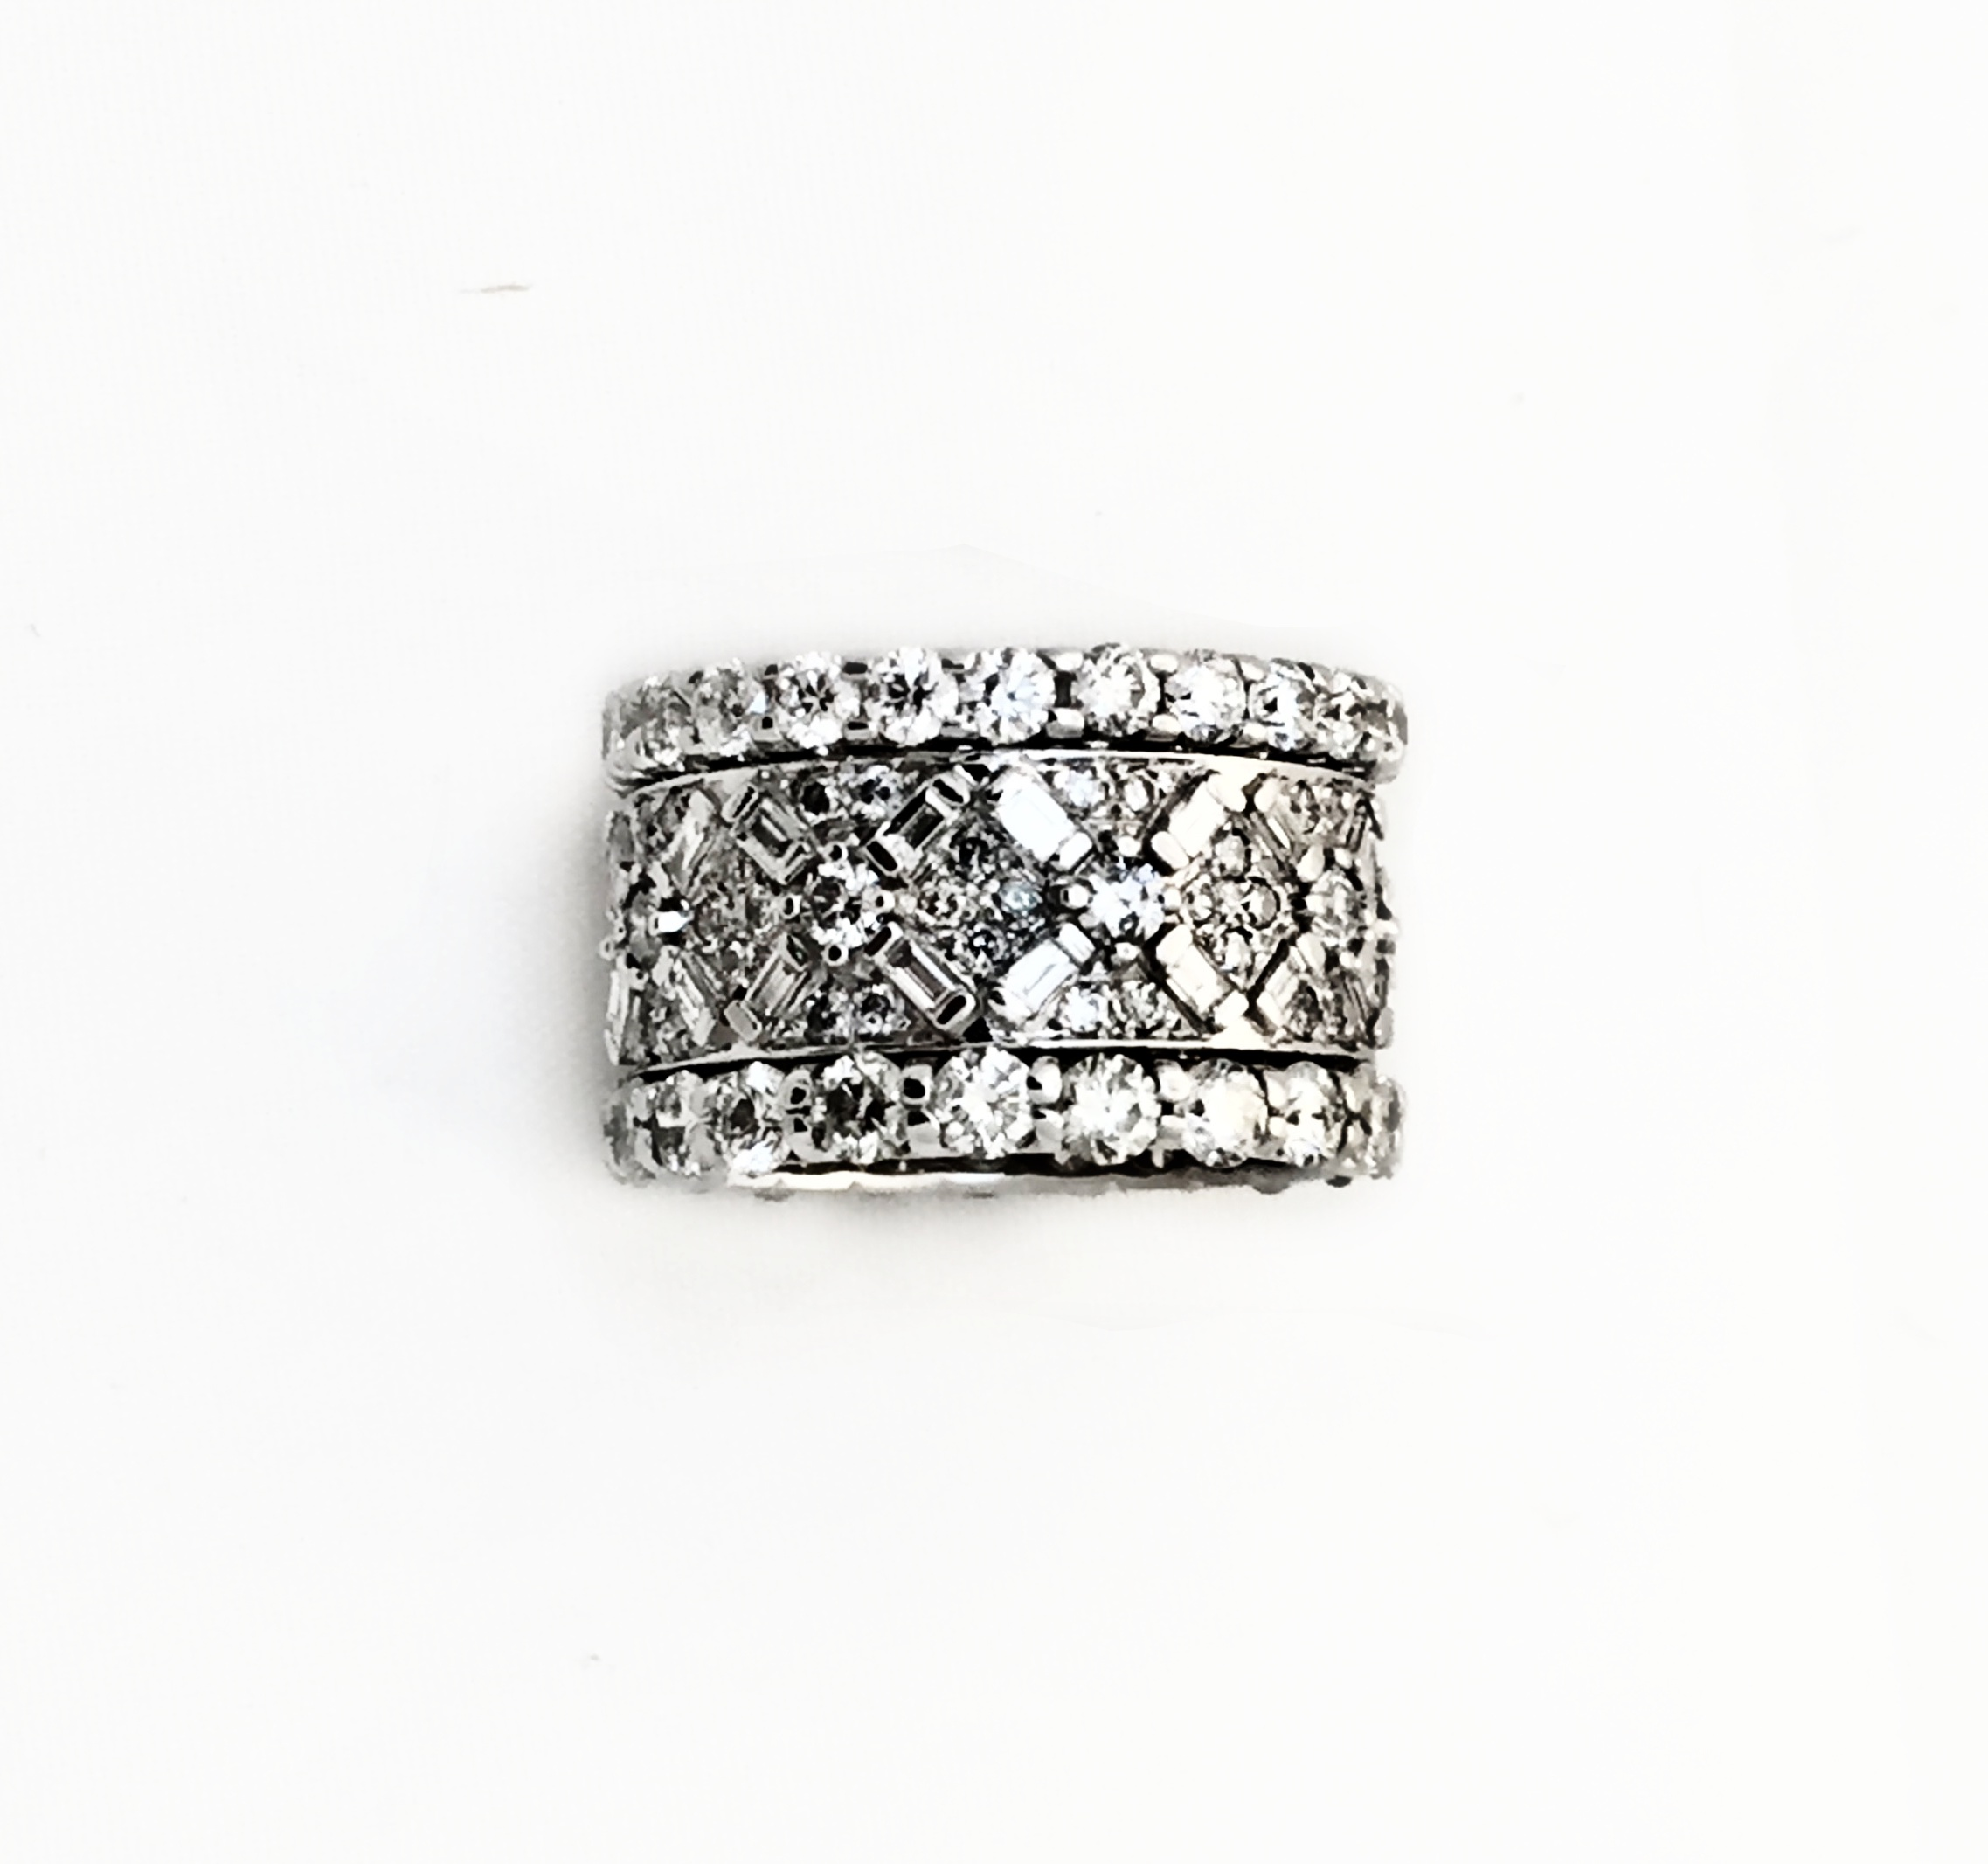 Bagette kisses surrounded by pave diamonds and border.